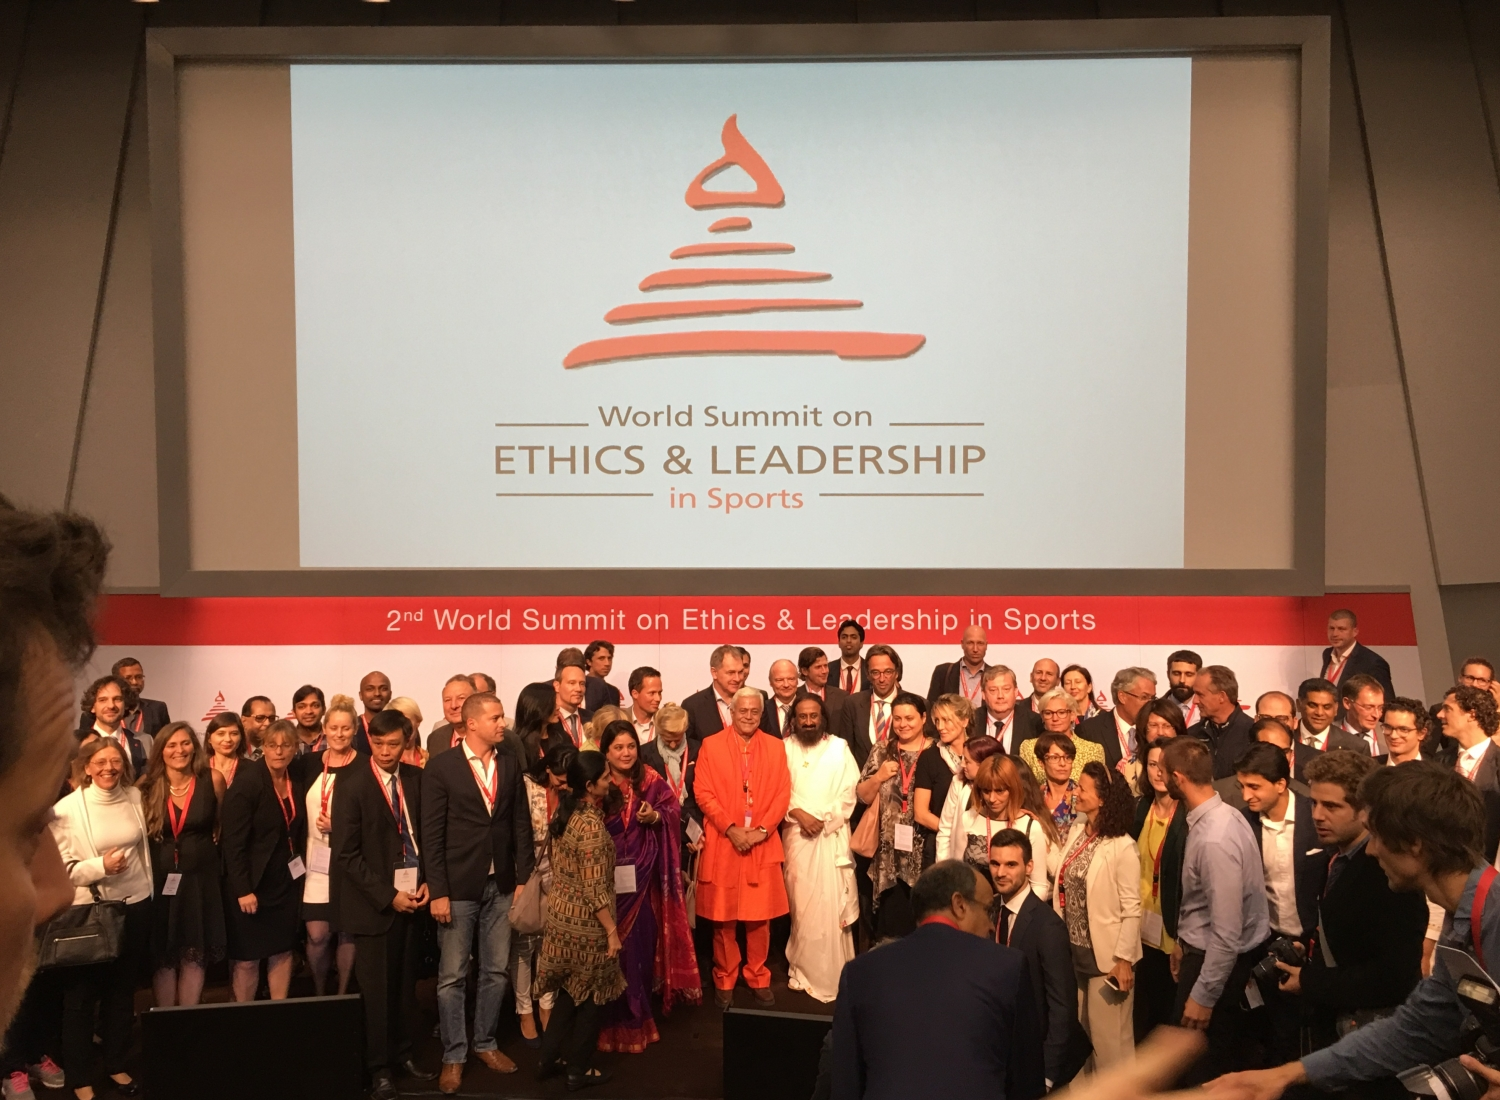 2nd World Summit on Ethics & Leadership in Sports - Zurich, Suiça - 2016, Setembro